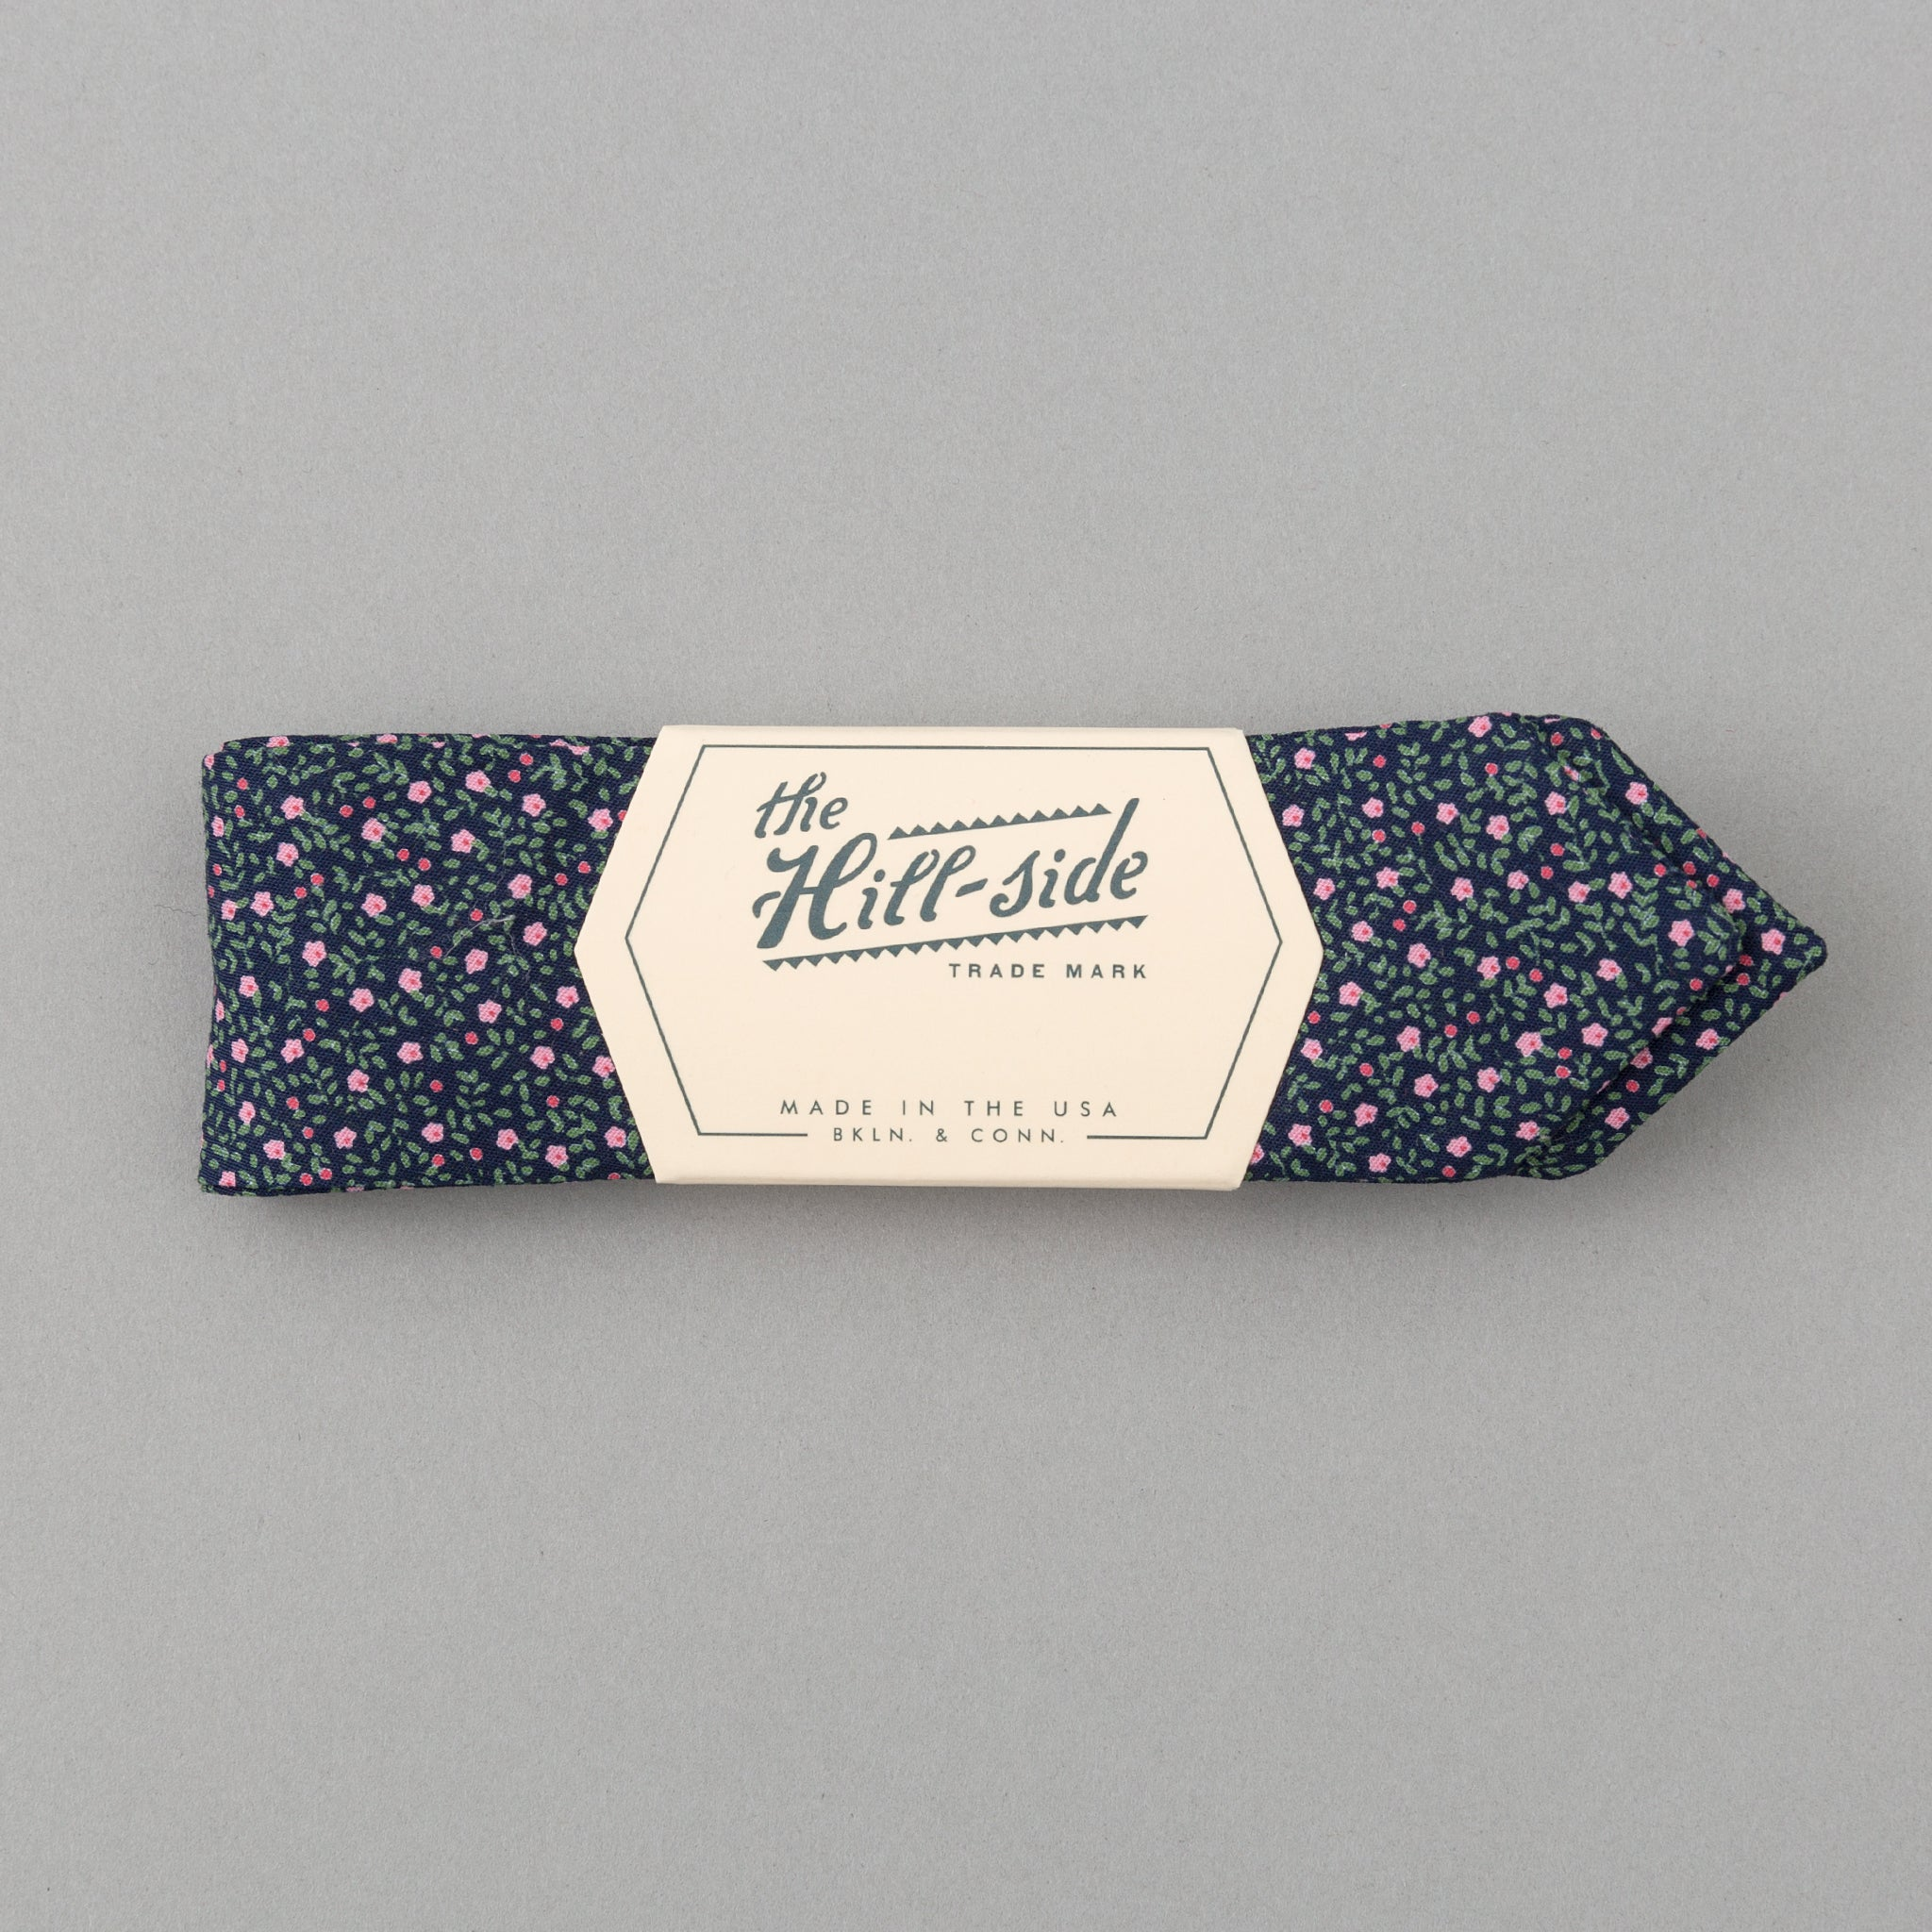 The Hill-Side - Micro Calico Print Bow Tie, Navy - BT1-497 - image 1